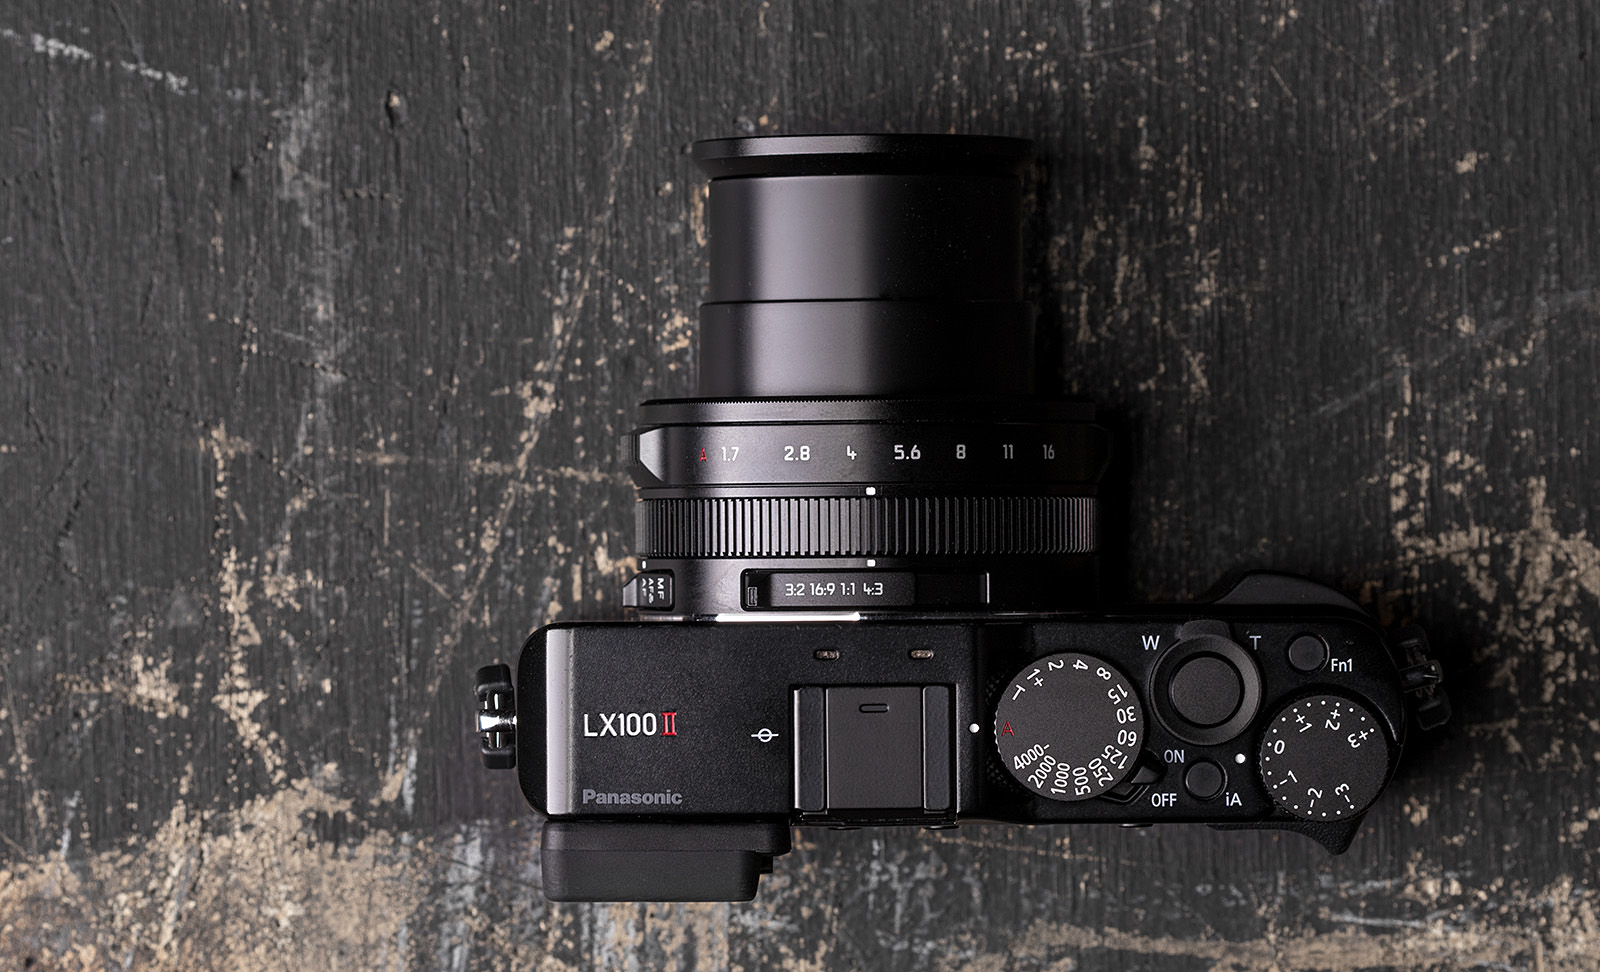 Why I'm delighted to see an LX100 II: Digital Photography Review